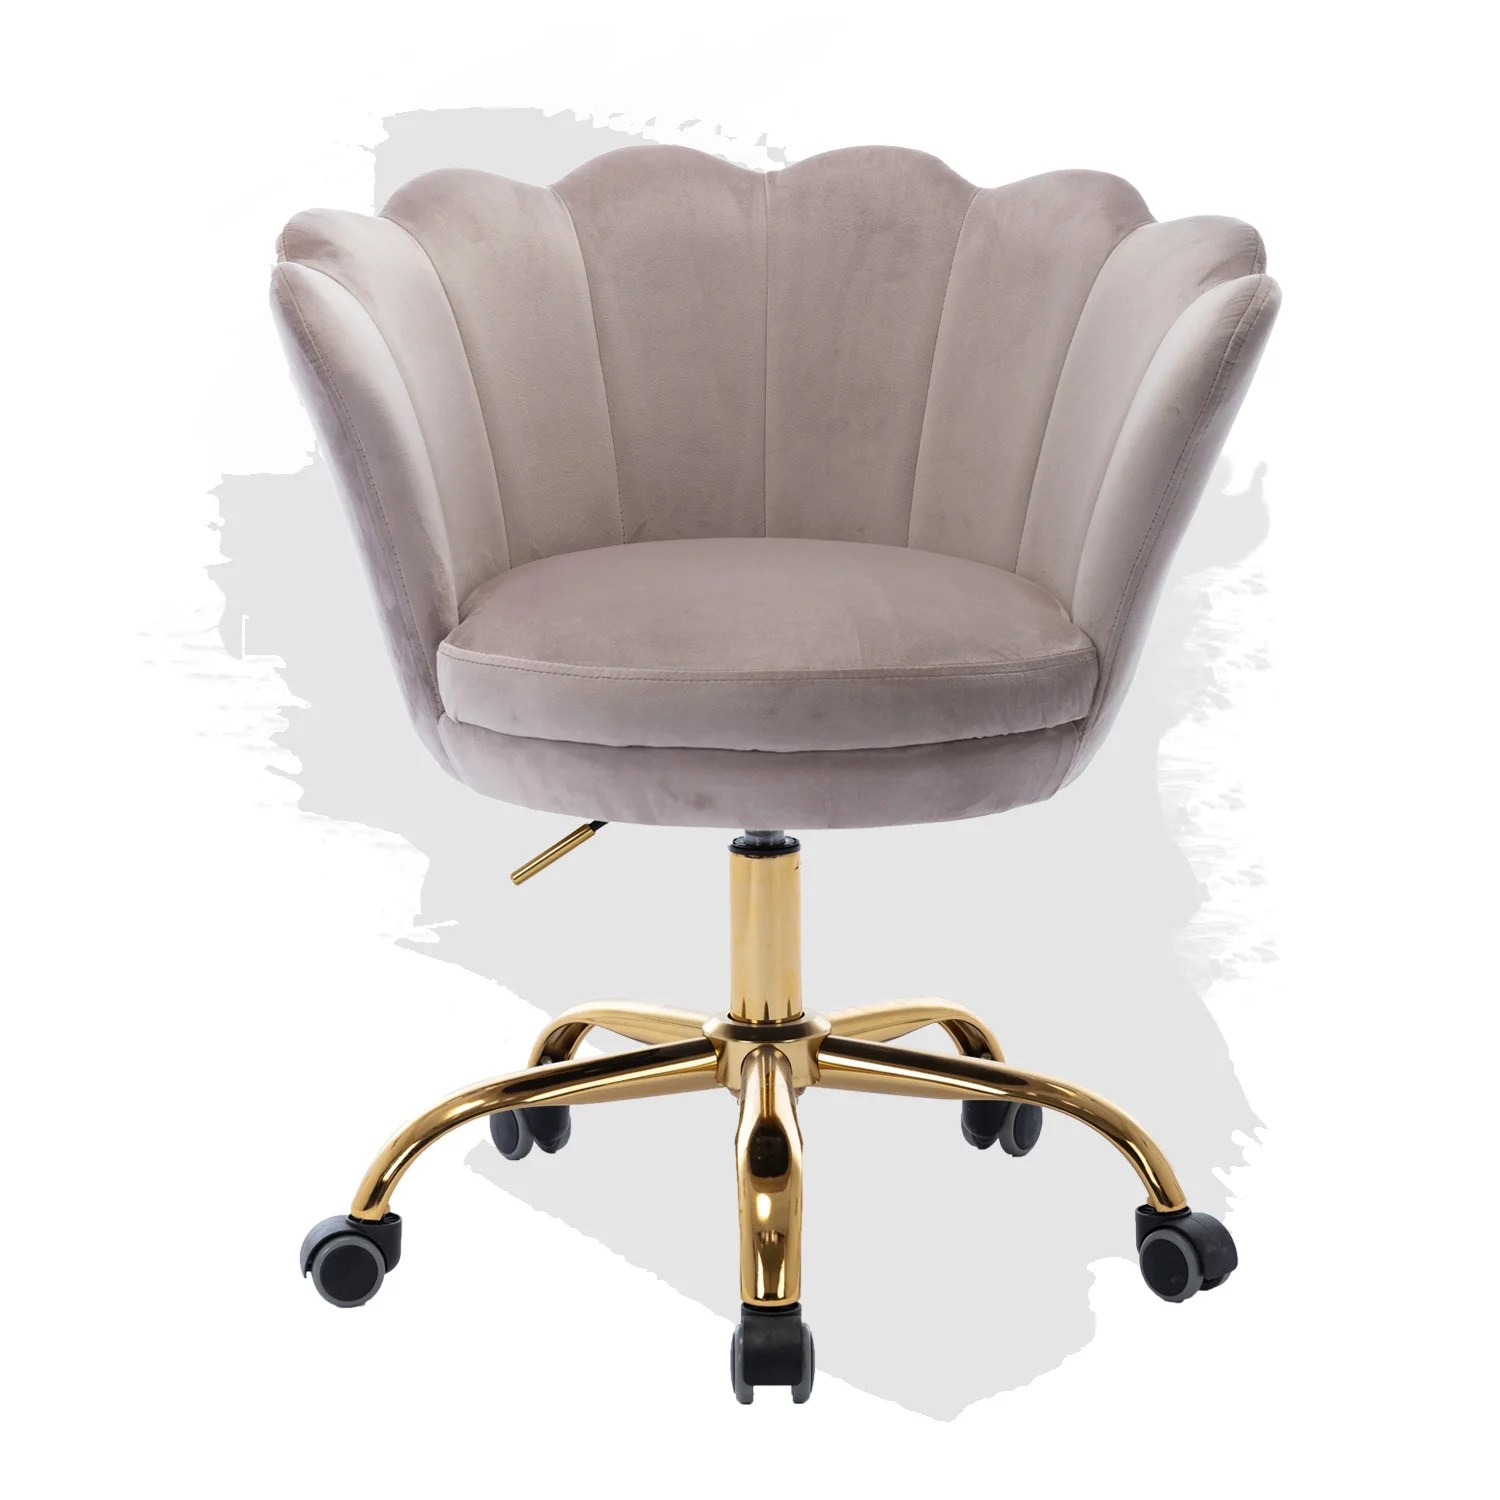 Everly Quinn Velvet Swivel Chair On 5 Rolling Castors Height Adjustable Lift Home Office Desk Chair Modern Shell Computer Chair Accent Chair Soft Furry Compact Padded Seat Vanity Living Room Bedroom And